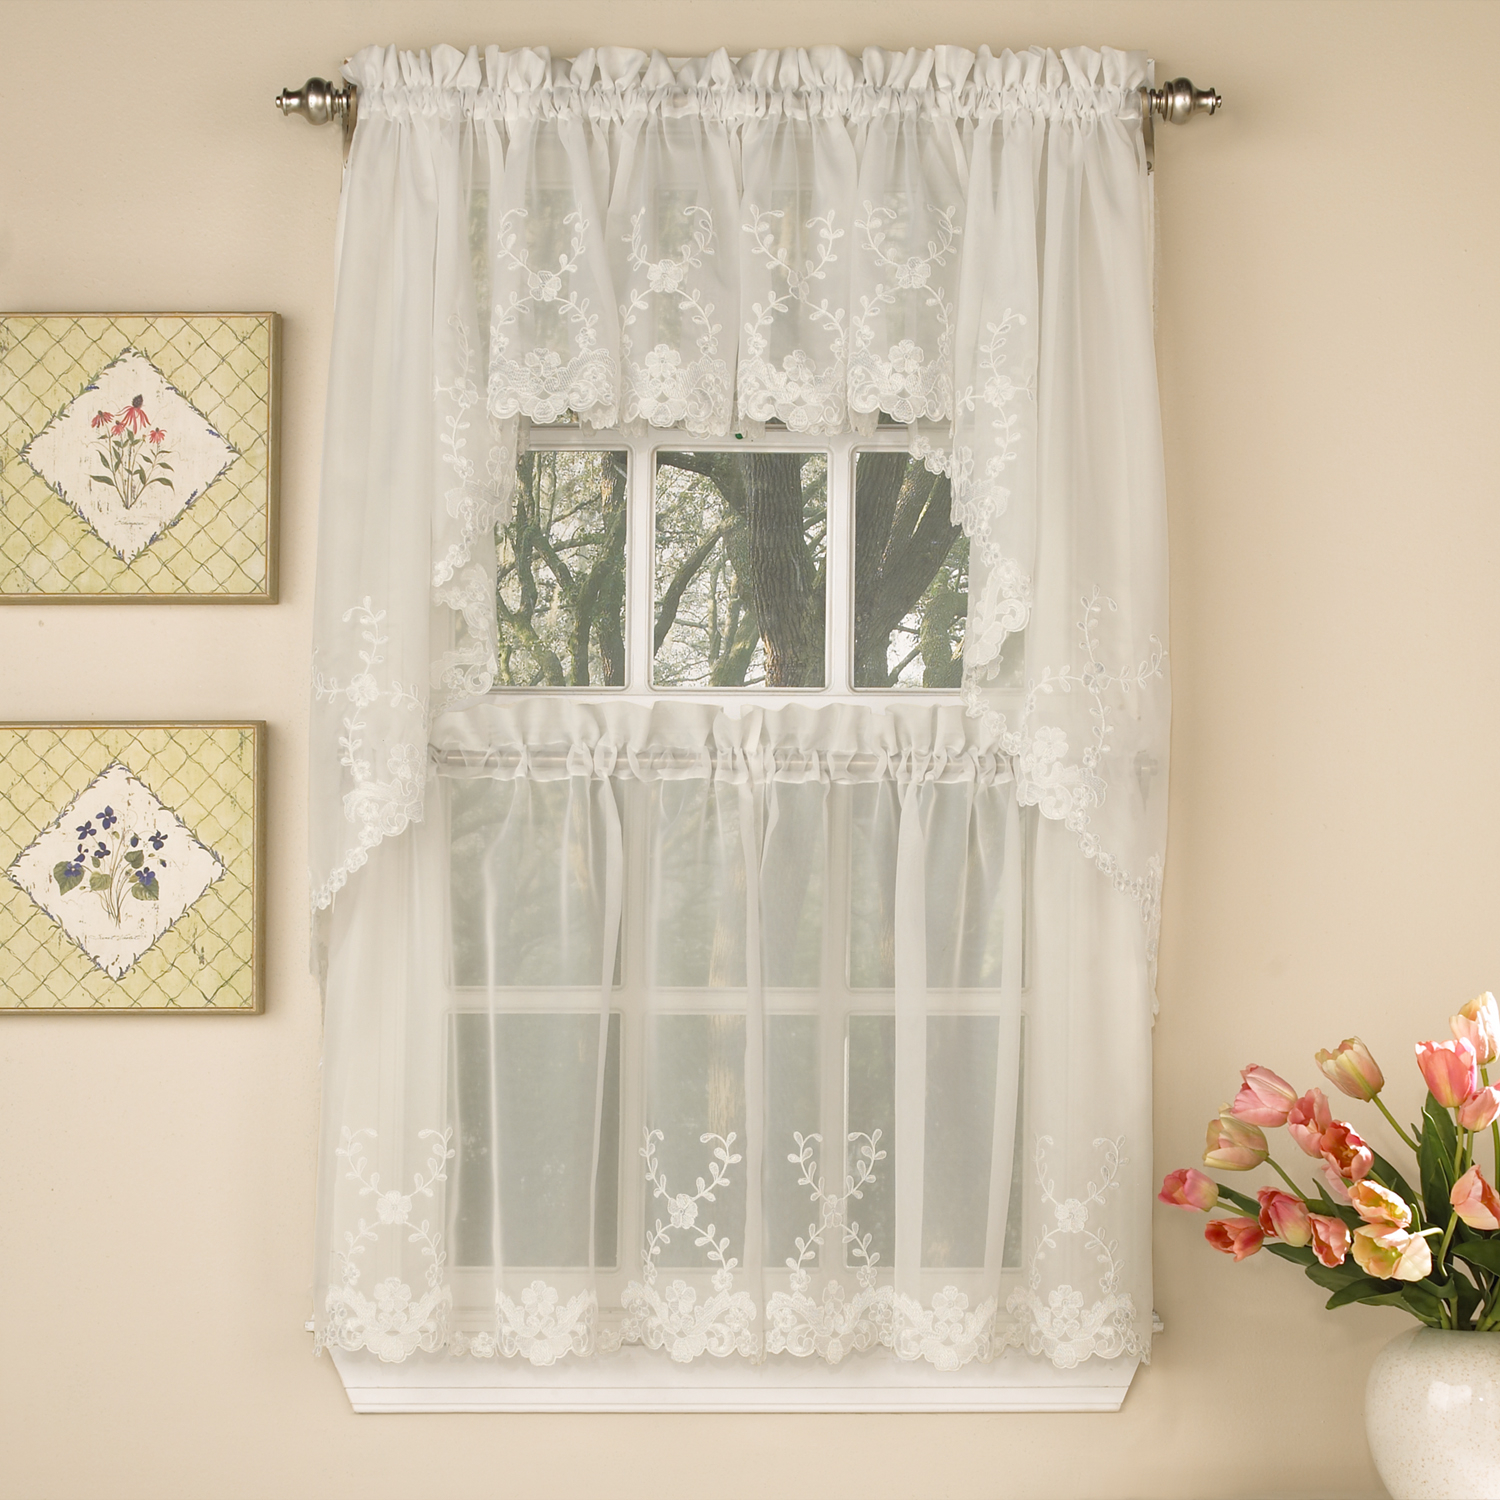 Details About Laurel Leaf Sheer Voile Embroidered Ivory Kitchen Curtains Tier, Valance Or Swag Pertaining To Semi Sheer Rod Pocket Kitchen Curtain Valance And Tiers Sets (View 5 of 20)